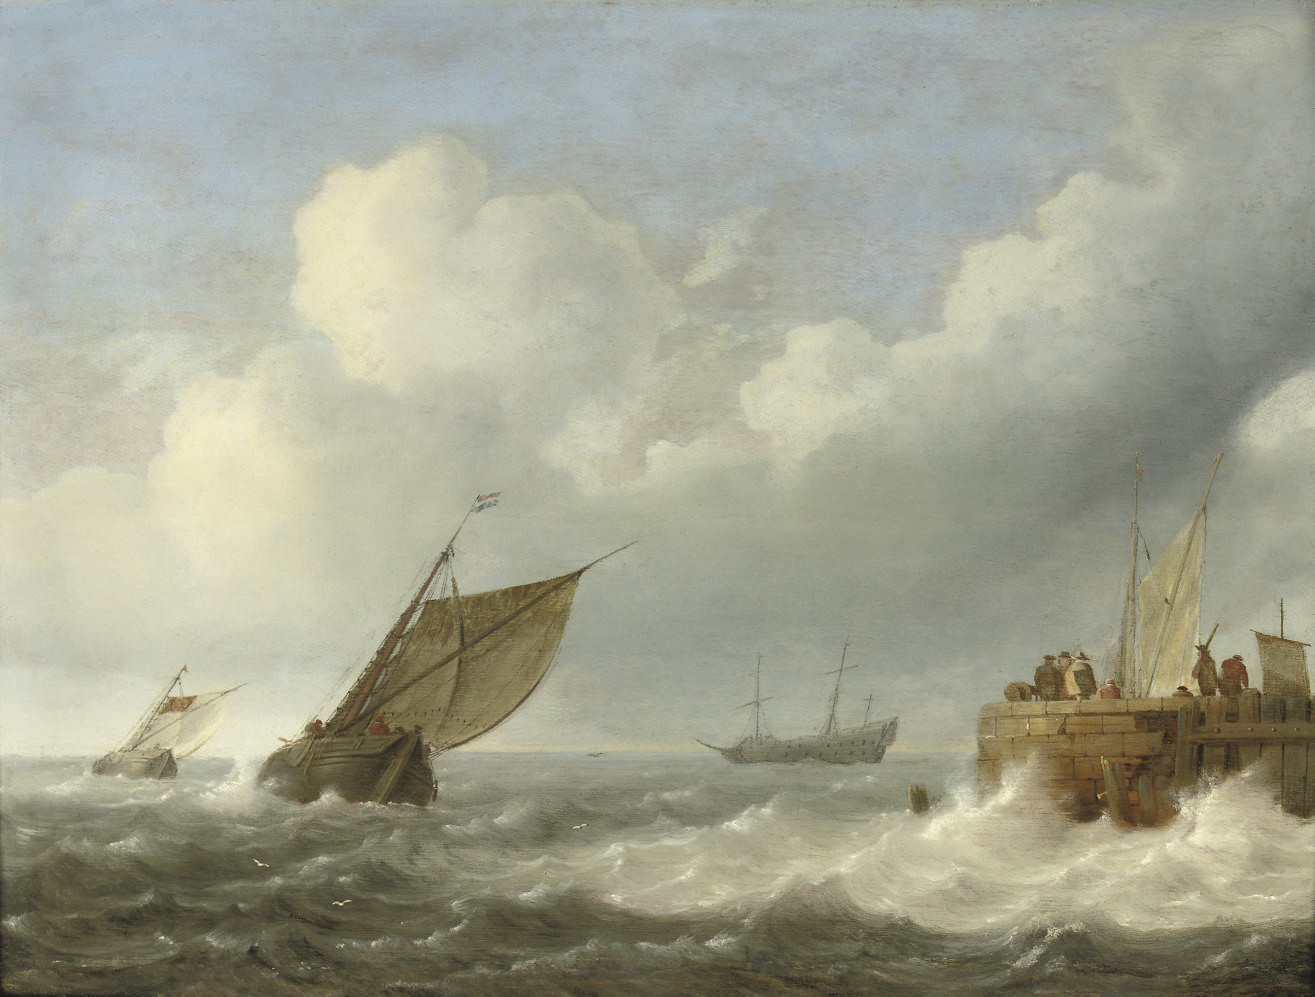 Sailing vessels in choppy waters with figures on a quay nearby